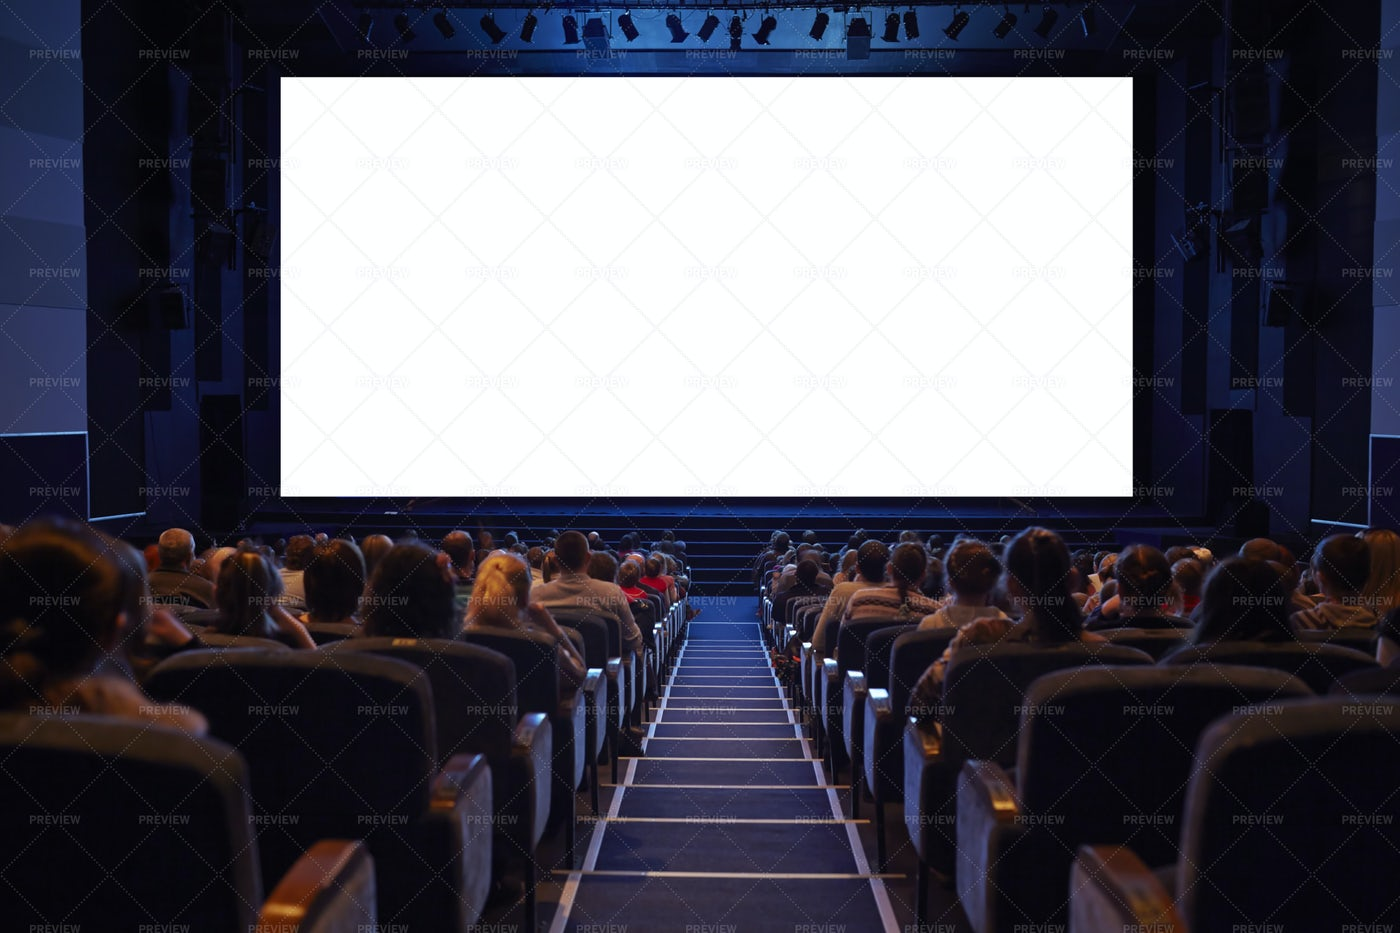 White Cinema Screen With Audience: Stock Photos